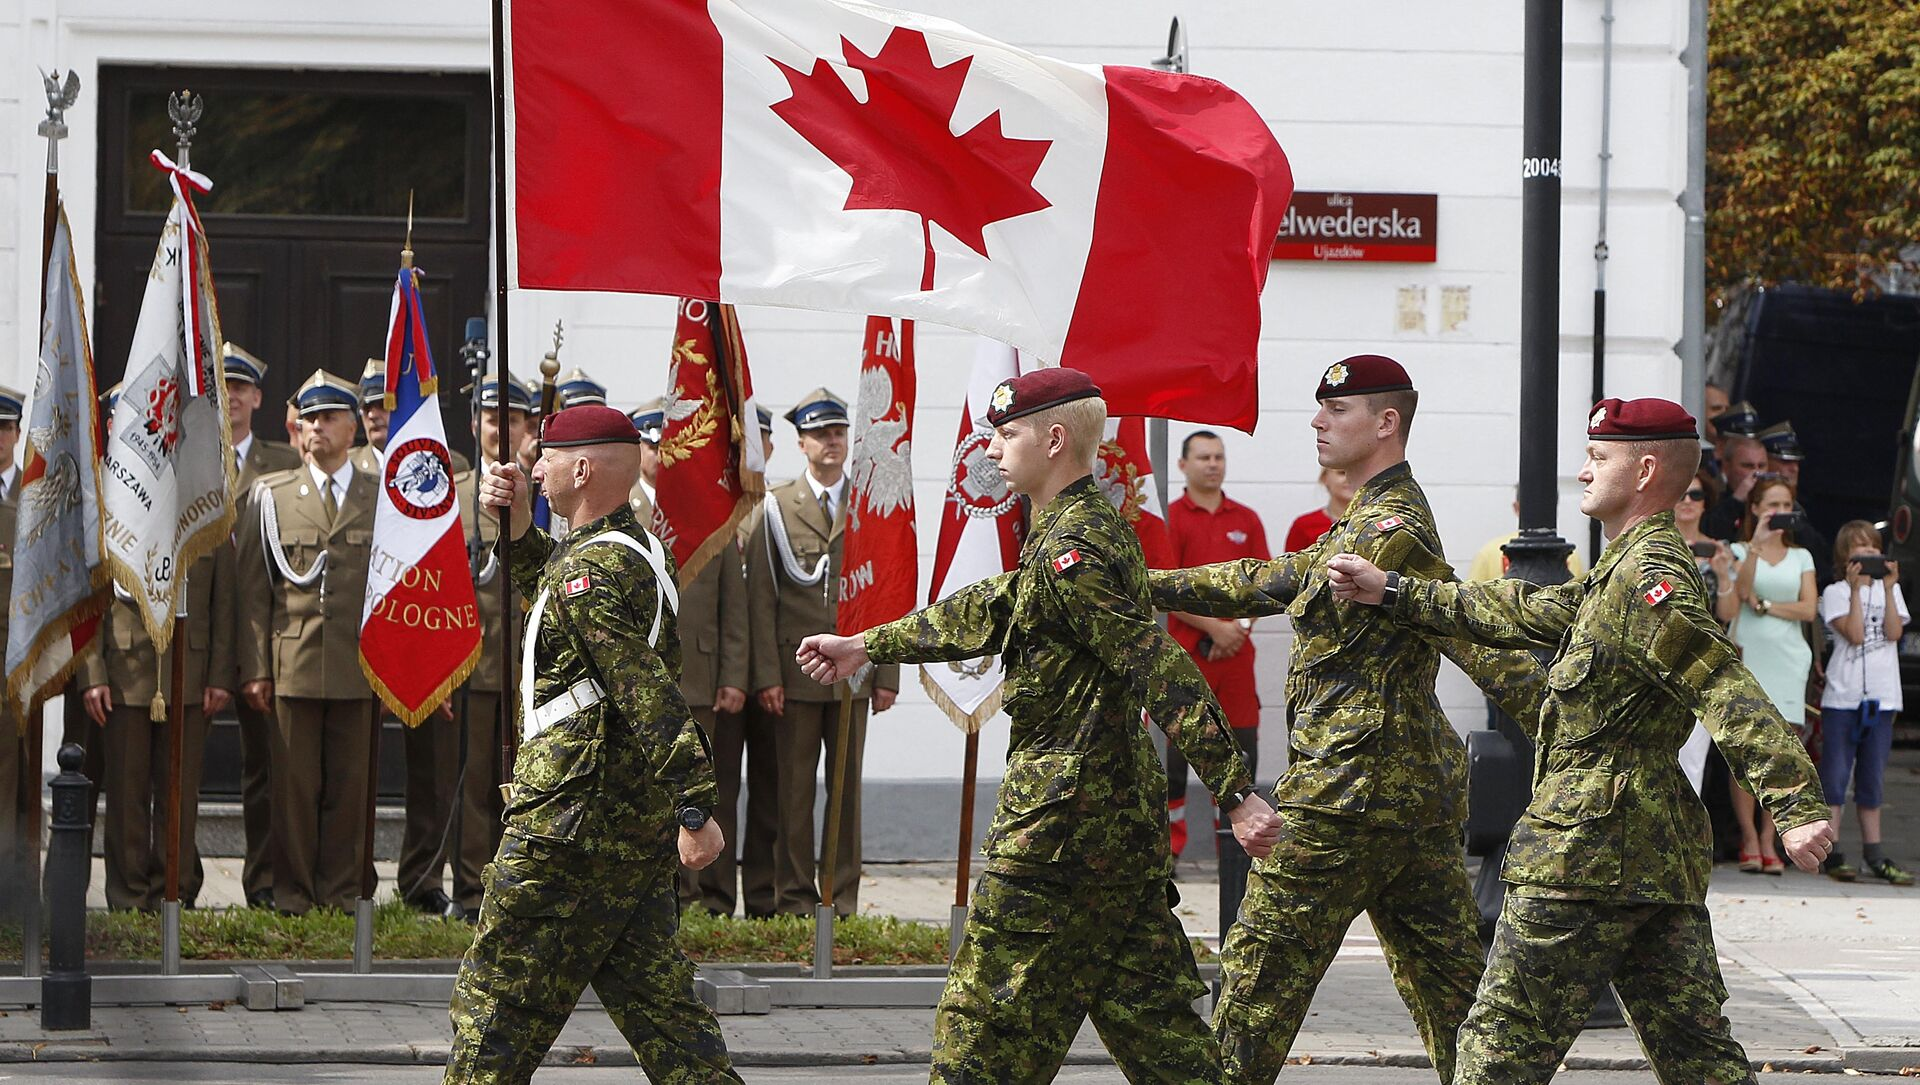 A military unit from Canada marches during a military parade marking Polish Armed Forces Day, in Warsaw, Poland (File) - Sputnik International, 1920, 15.06.2021